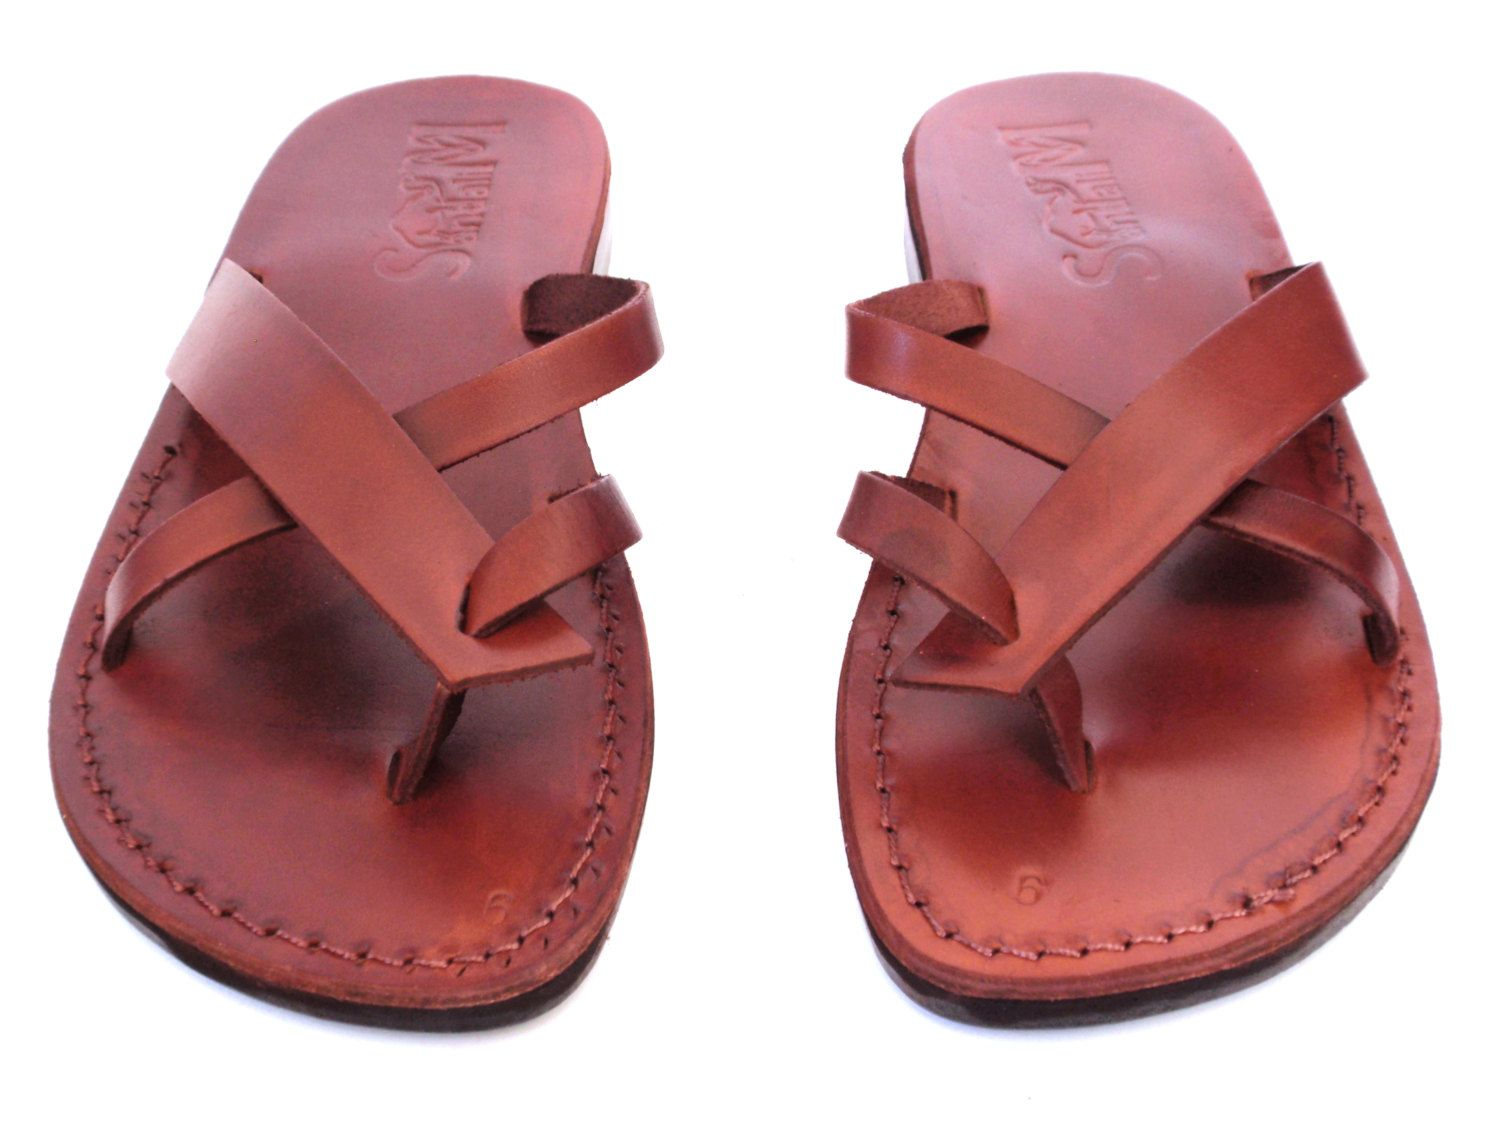 907f62cae26bb SALE ! New Leather Sandals PRINCESS Women s Shoes Thongs Flip Flops Flats  Slides Slippers Biblical Bridal Wedding Colored Footwear Designer by  Sandalimshop ...